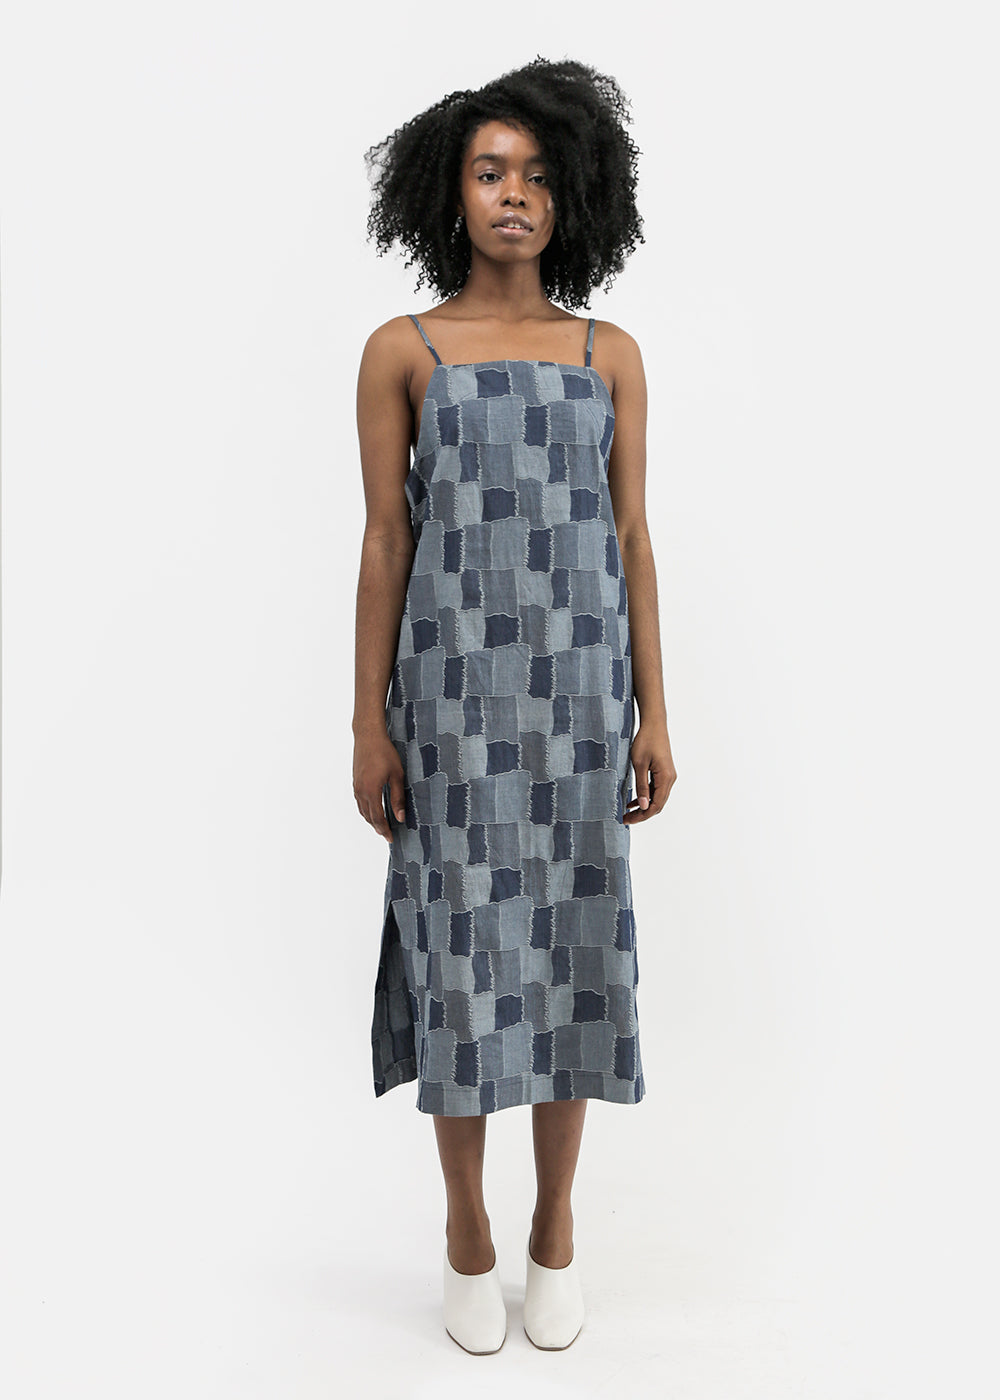 Vale Denim Castaway Dress — Shop sustainable fashion and slow fashion at New Classics Studios